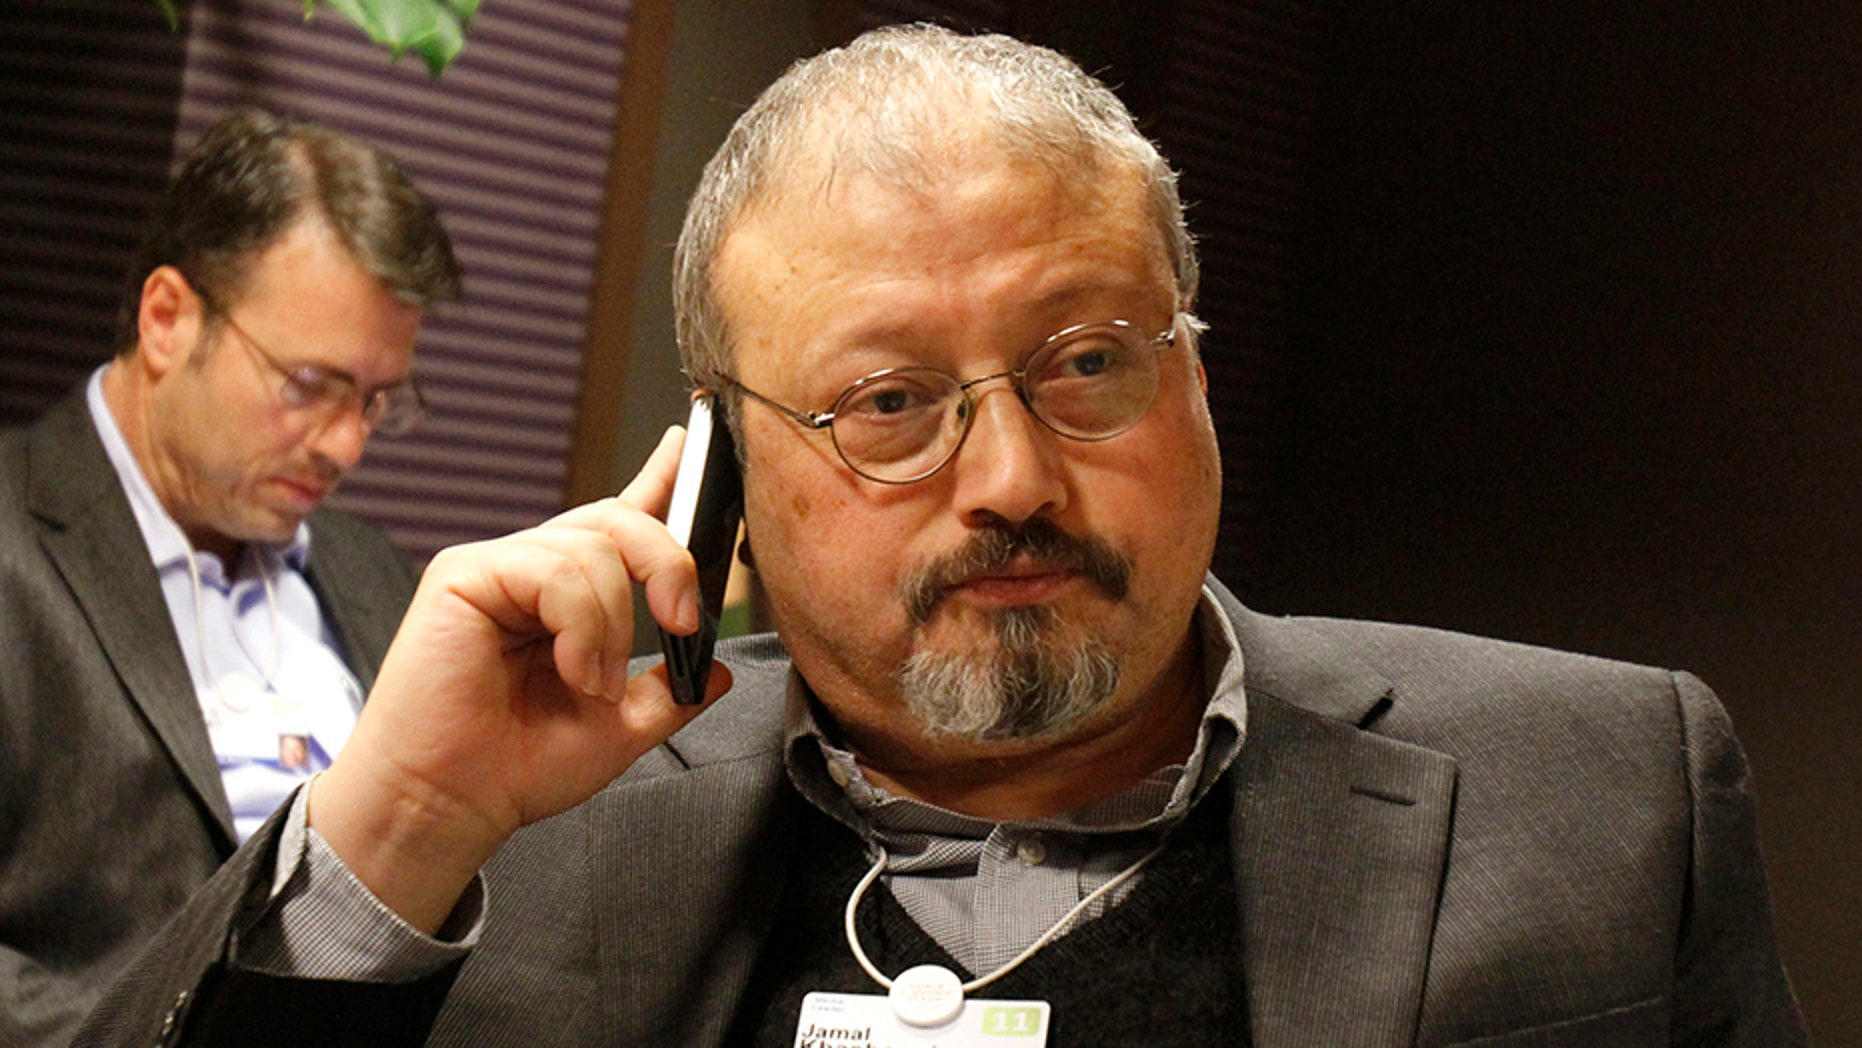 Erdogan adviser Aktay says missing Saudi journalist killed in Istanbul consulate